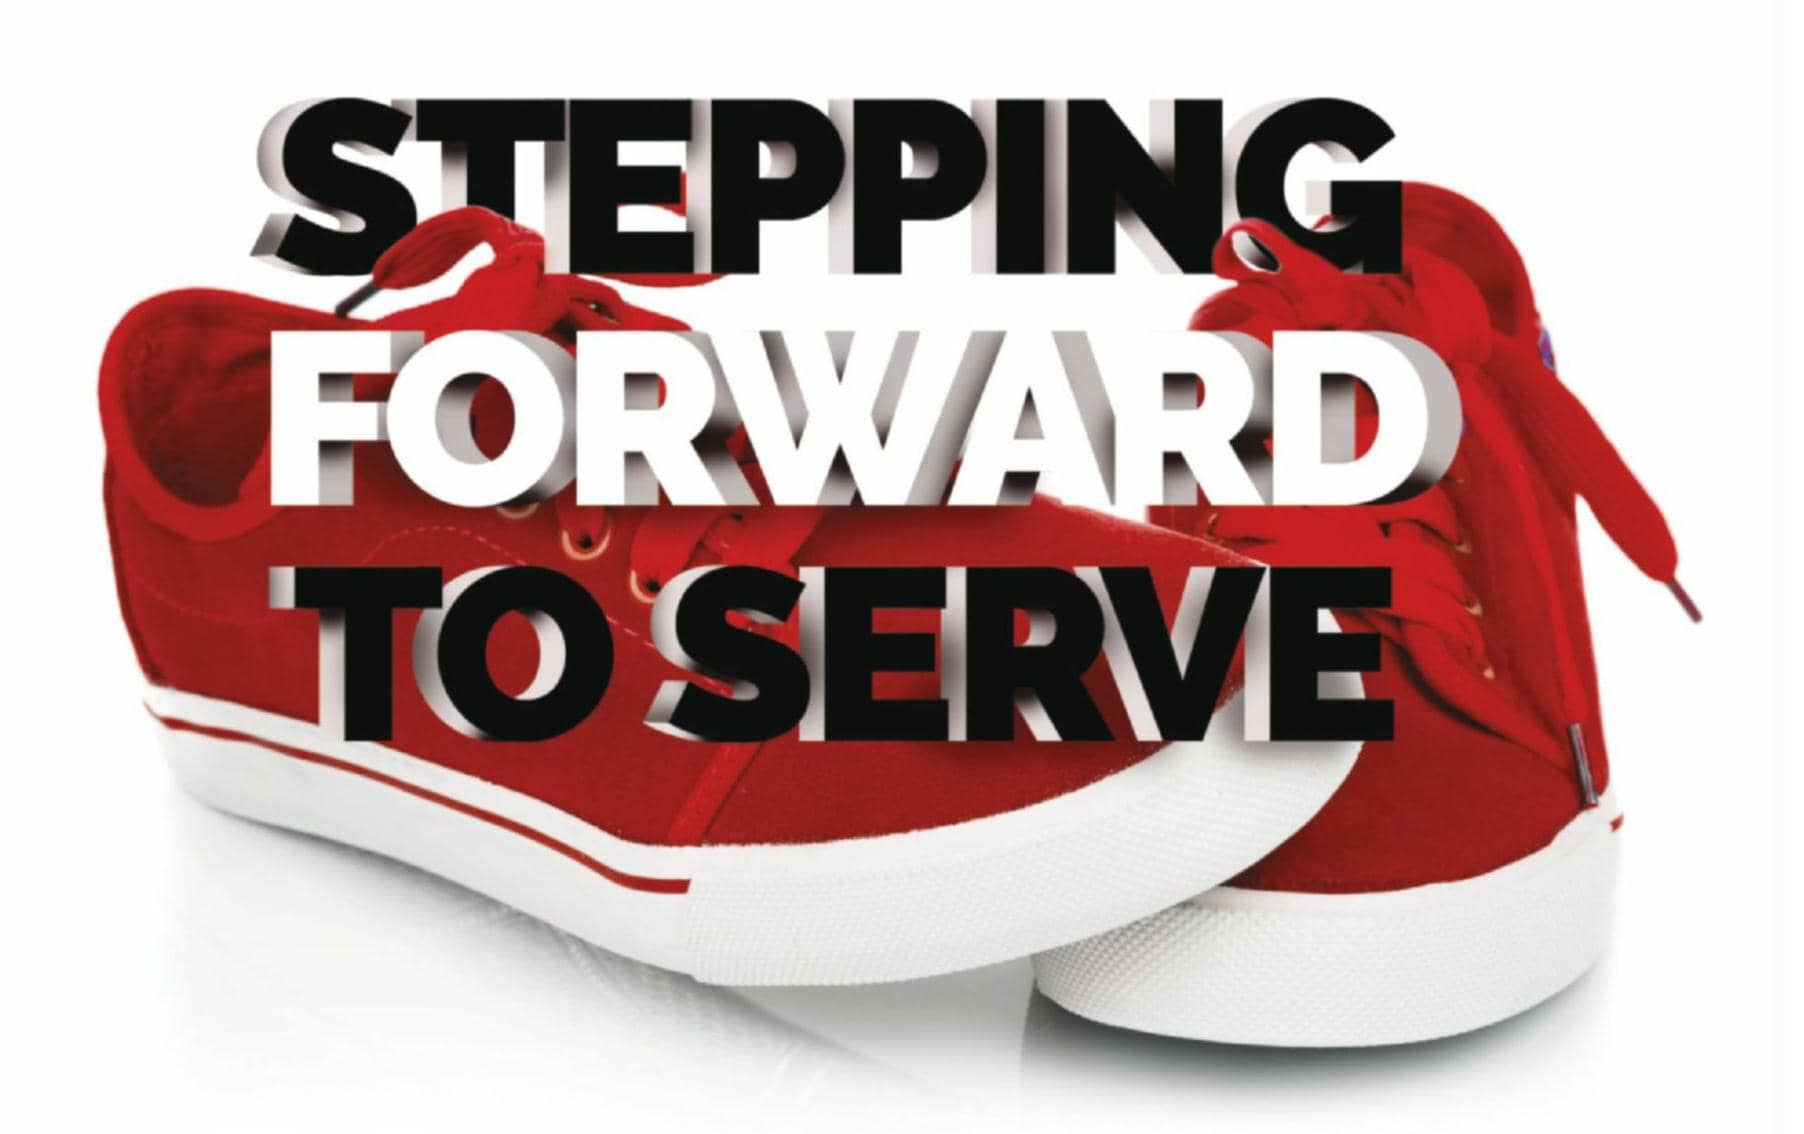 STEPPING FORWARD TO SERVE